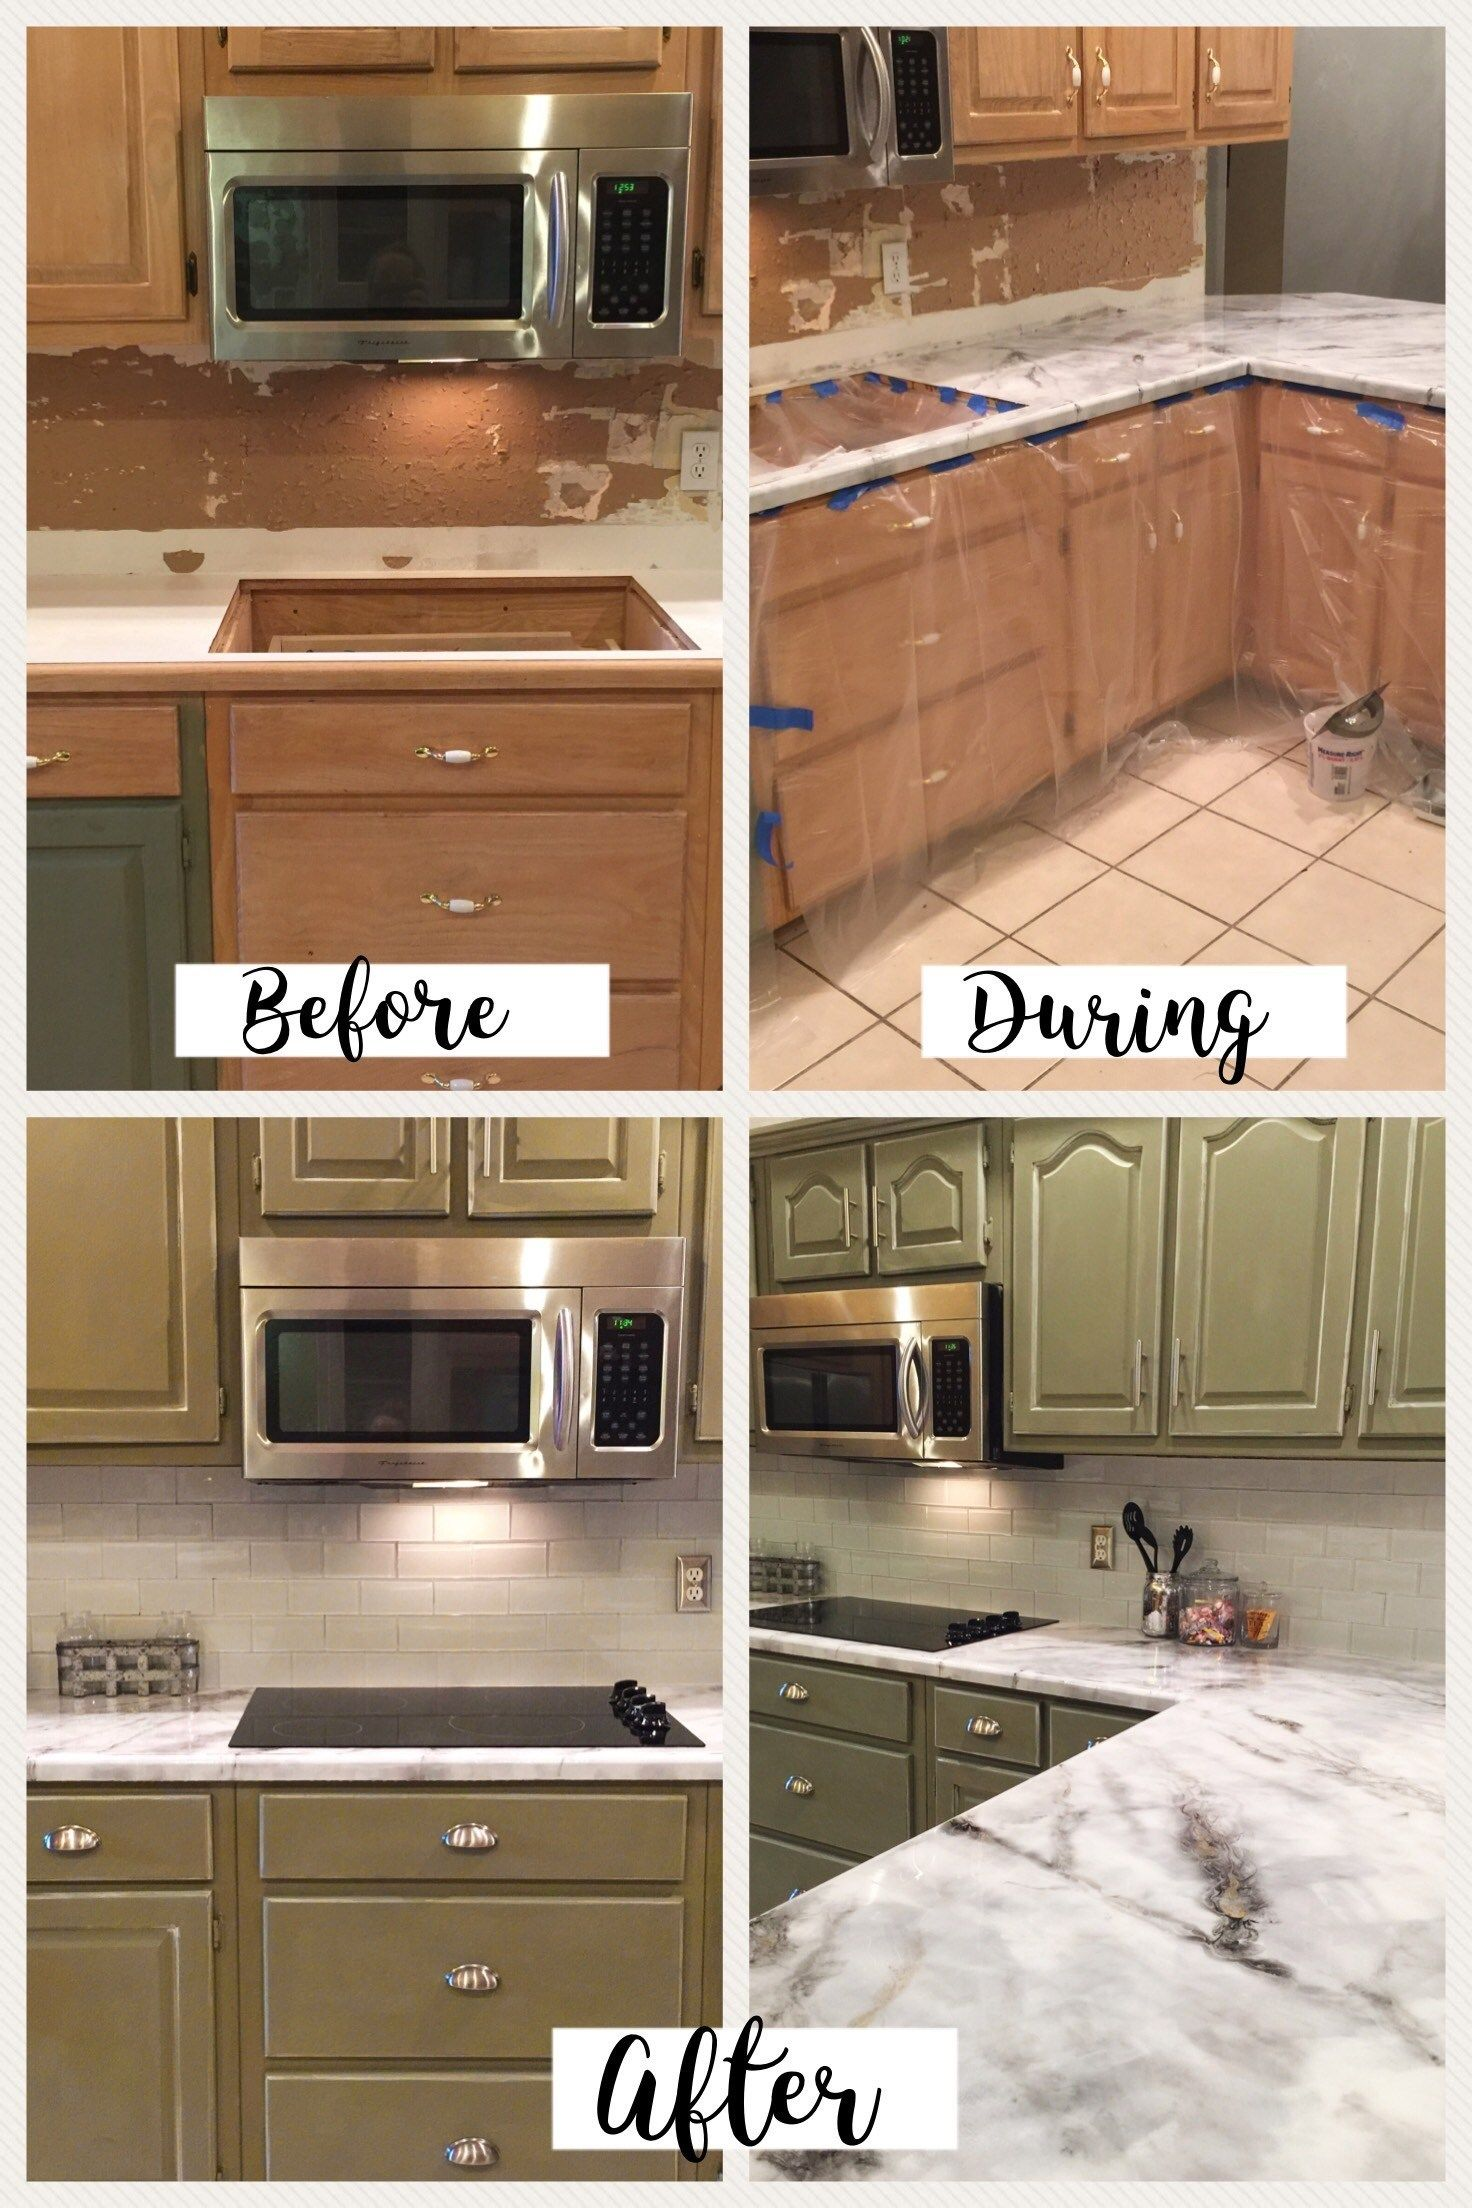 How To Resurface Kitchen Countertops Let S Paint Furniture Diy Kitchen Countertops Painting Kitchen Countertops Kitchen Countertops Laminate